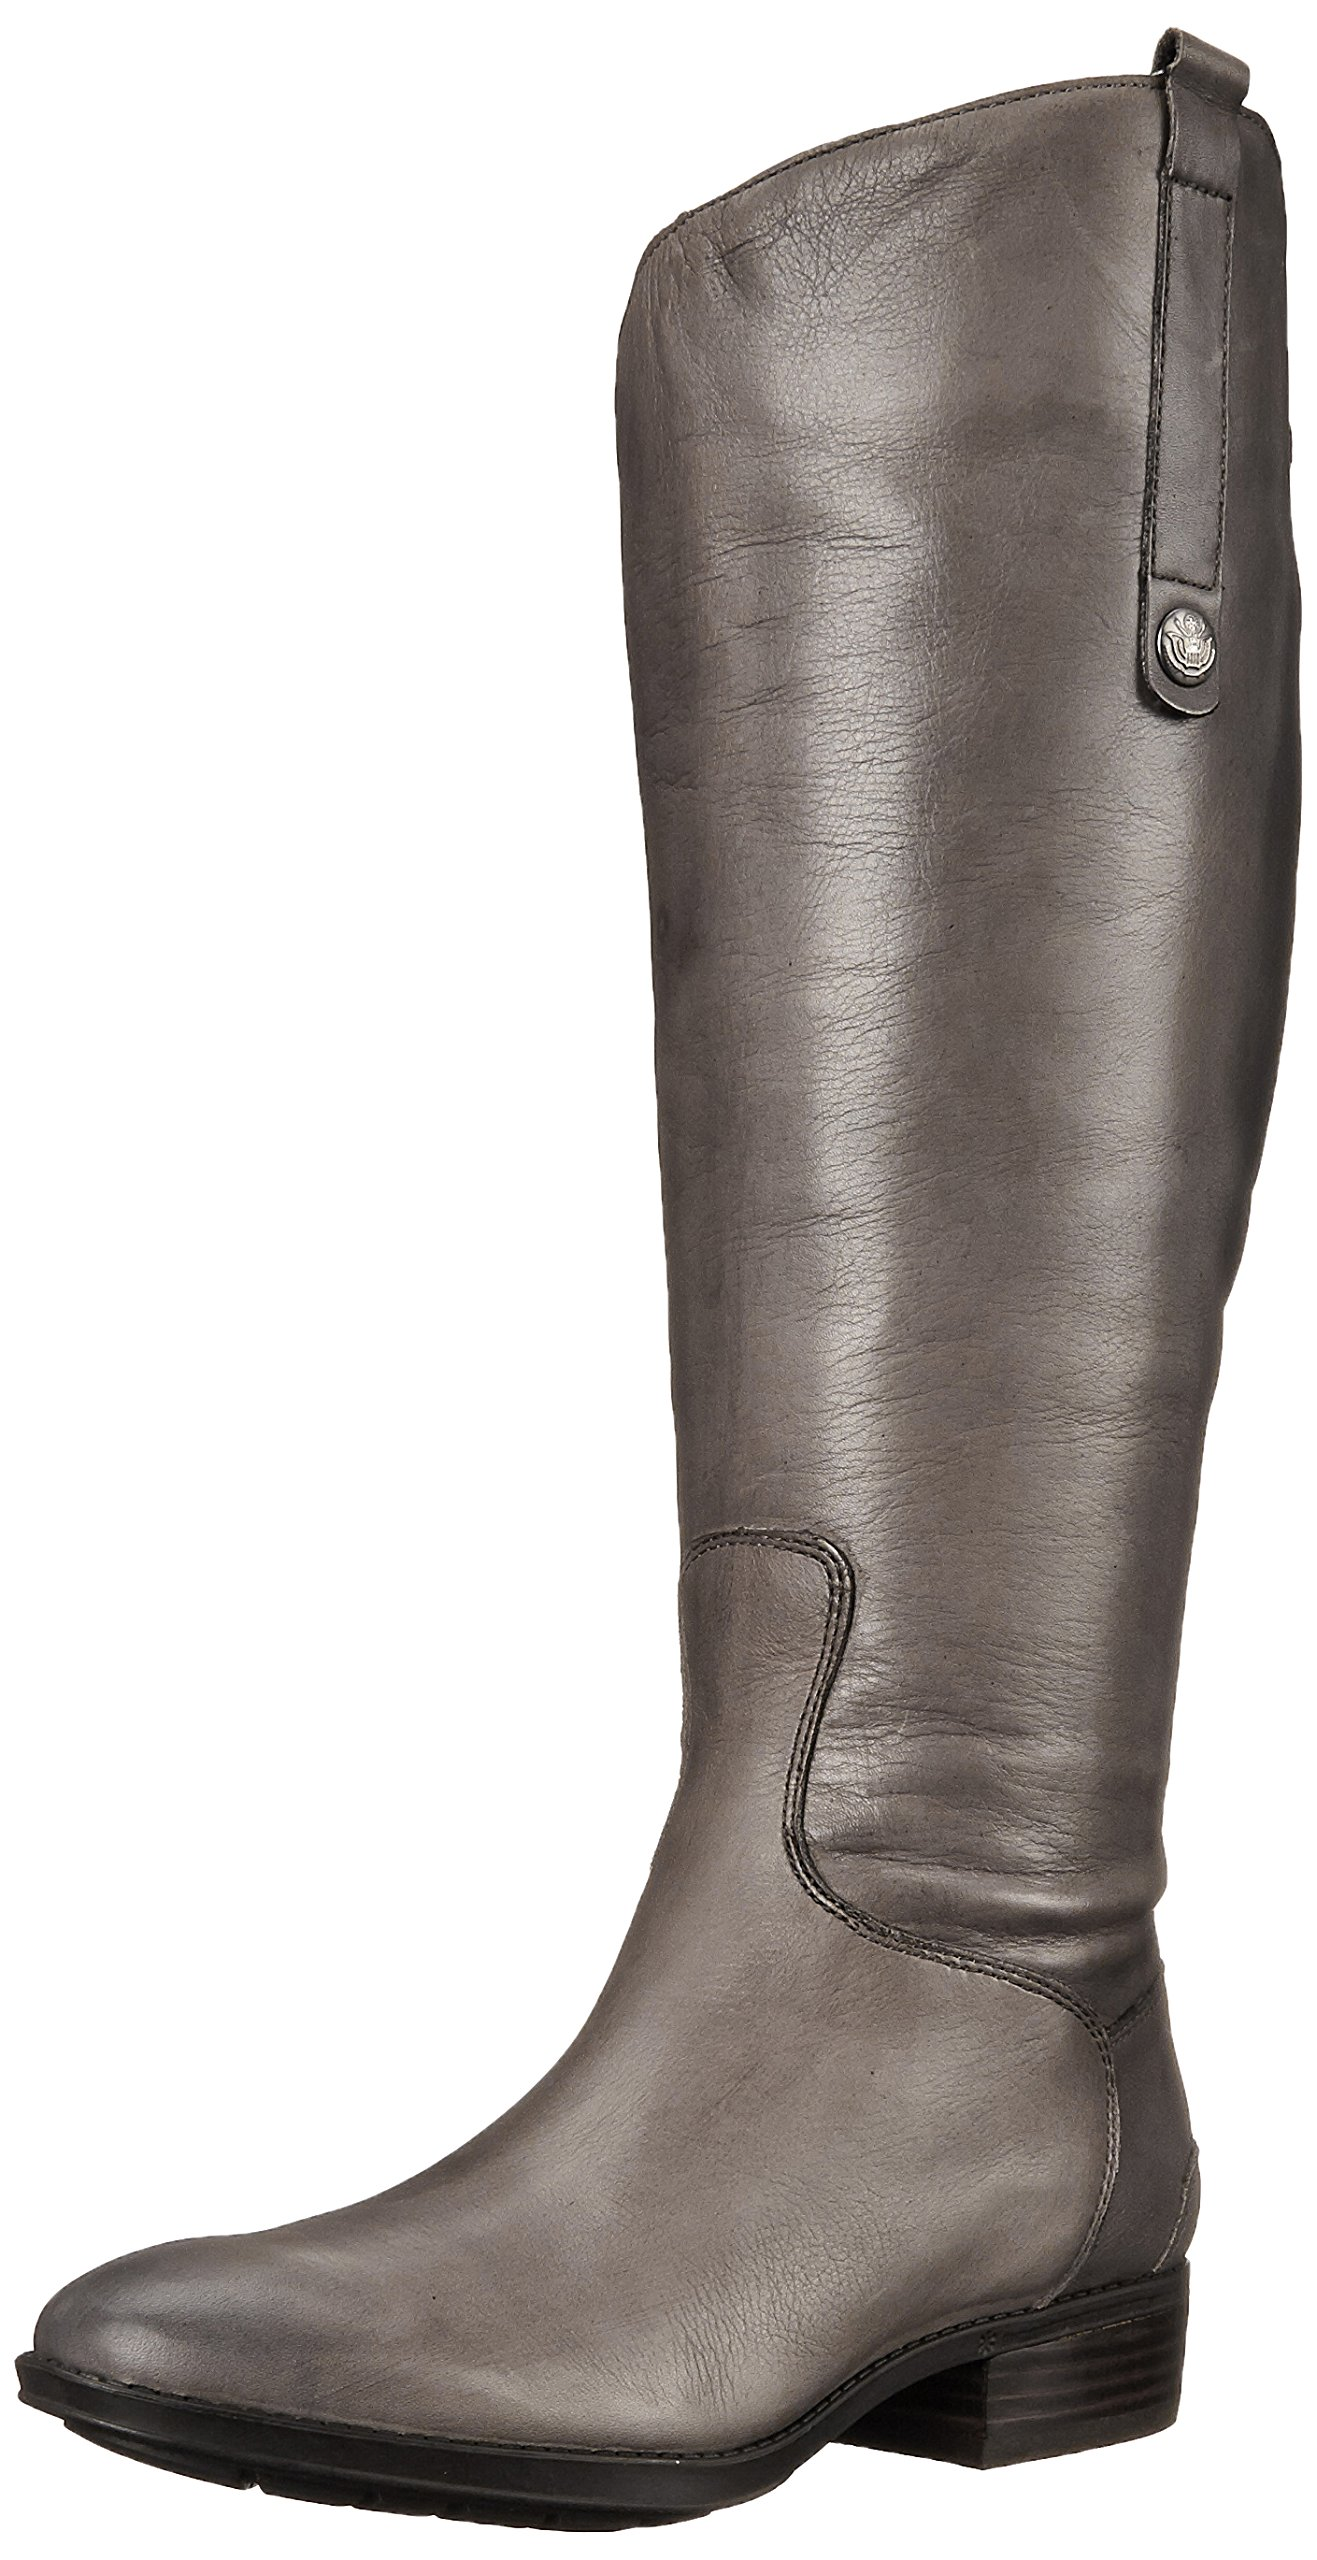 Sam Edelman Women's Penny 2 Riding Boot, Grey Frost, 8 M US by Sam Edelman